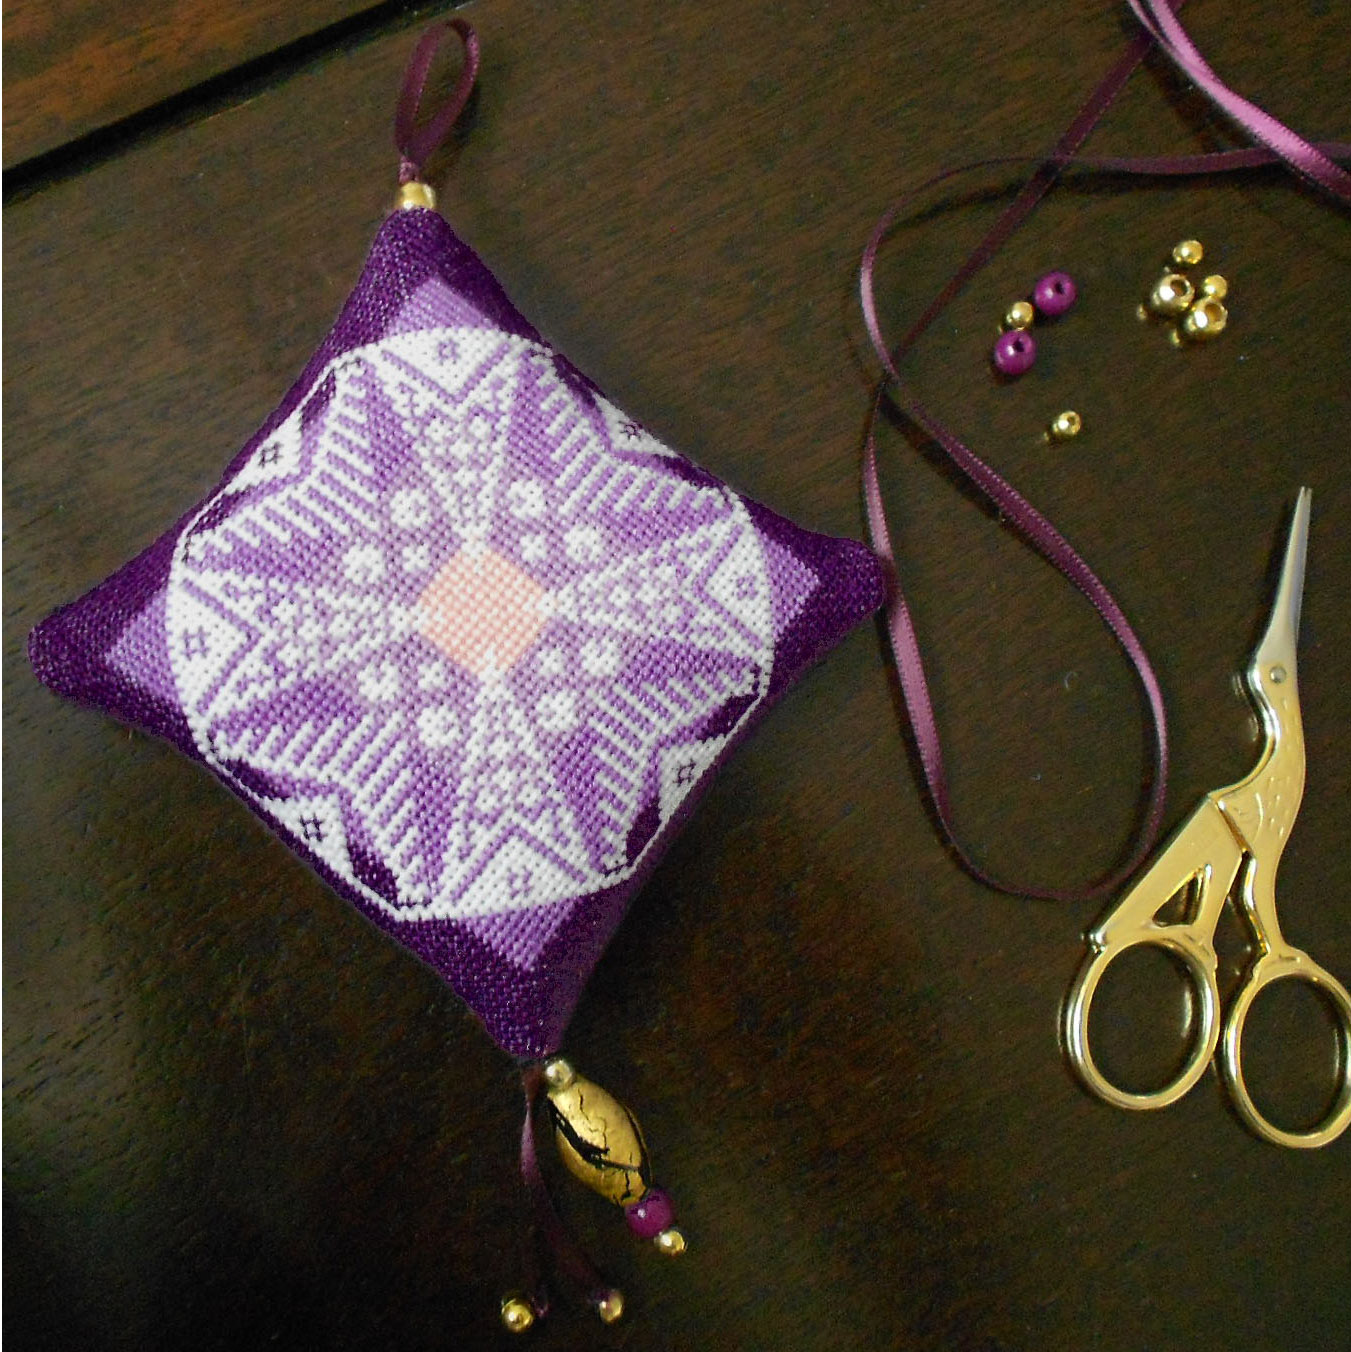 Jewel like embellishments for ornaments